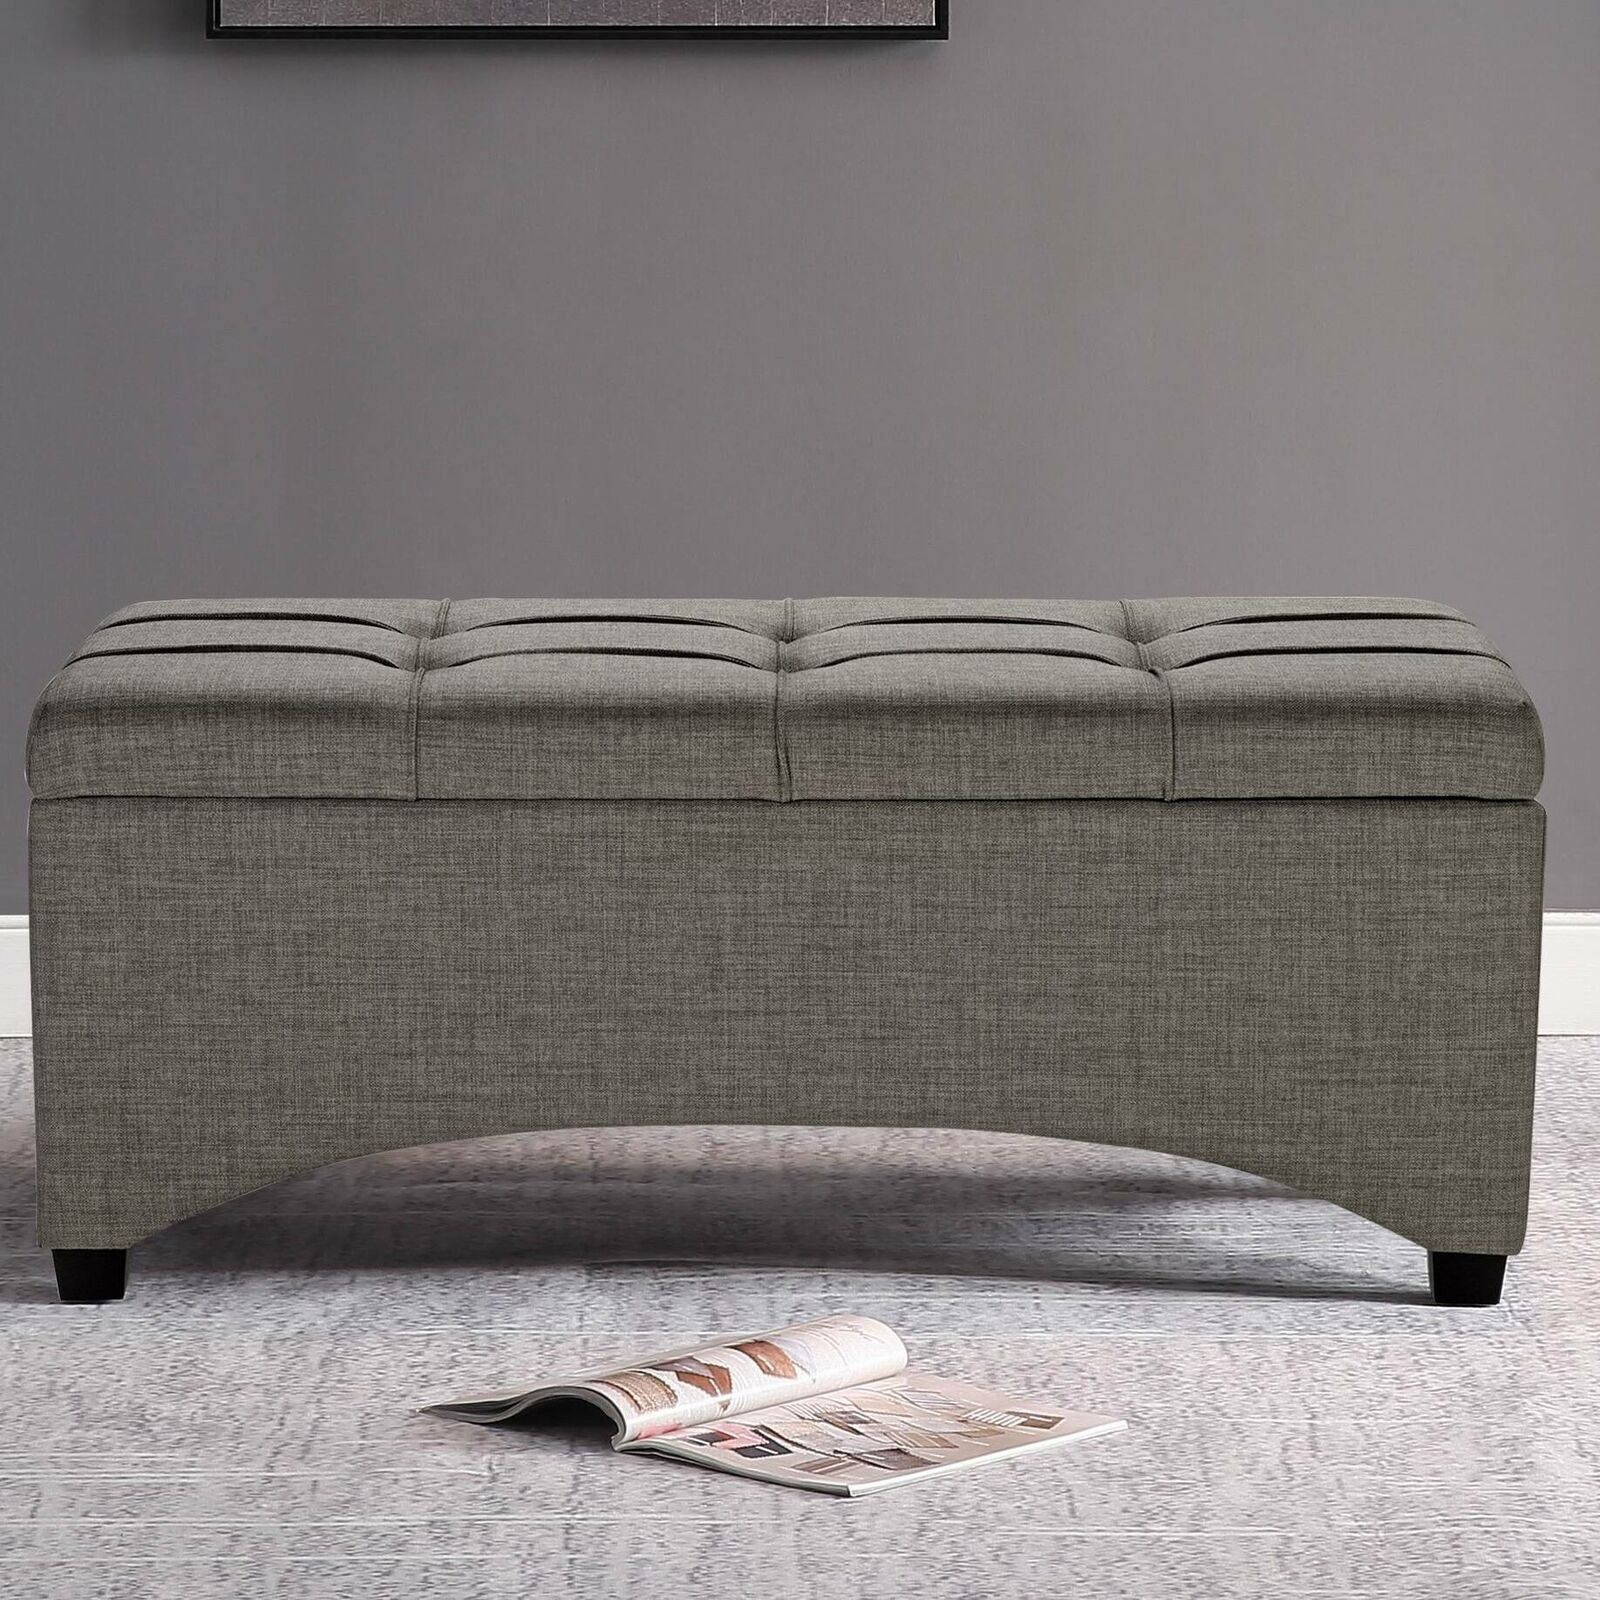 Picture of: Upholstered Storage Ottoman Red Sitting Bench Coffee Table Bedroom Furniture For Sale Online Ebay